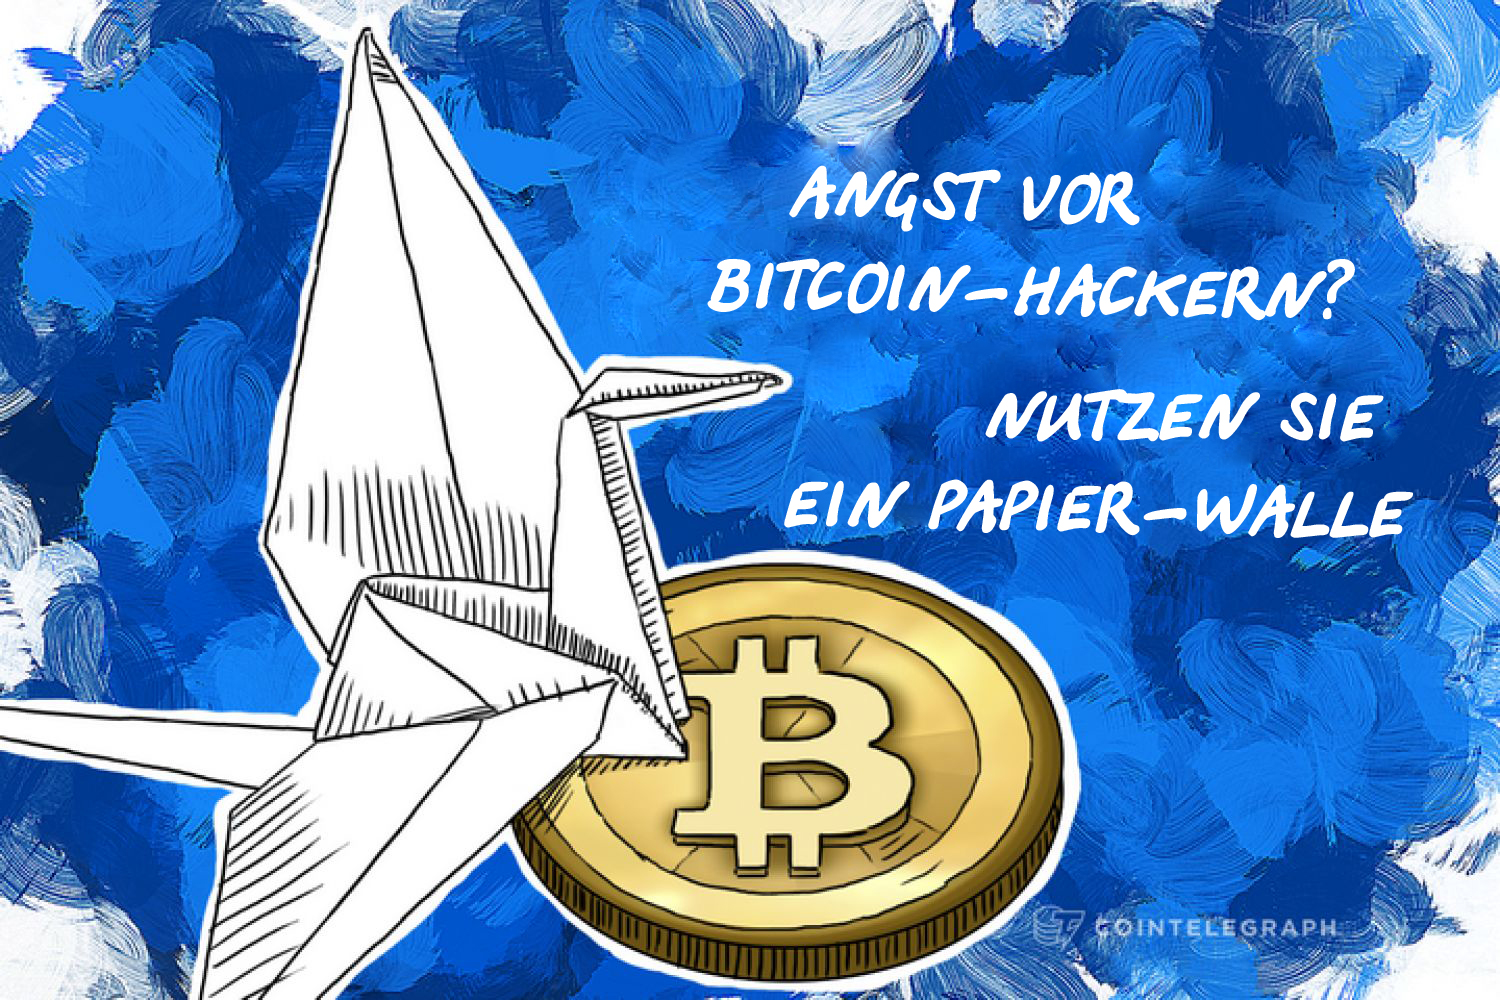 Bitcoin paper wallet as an origami crane